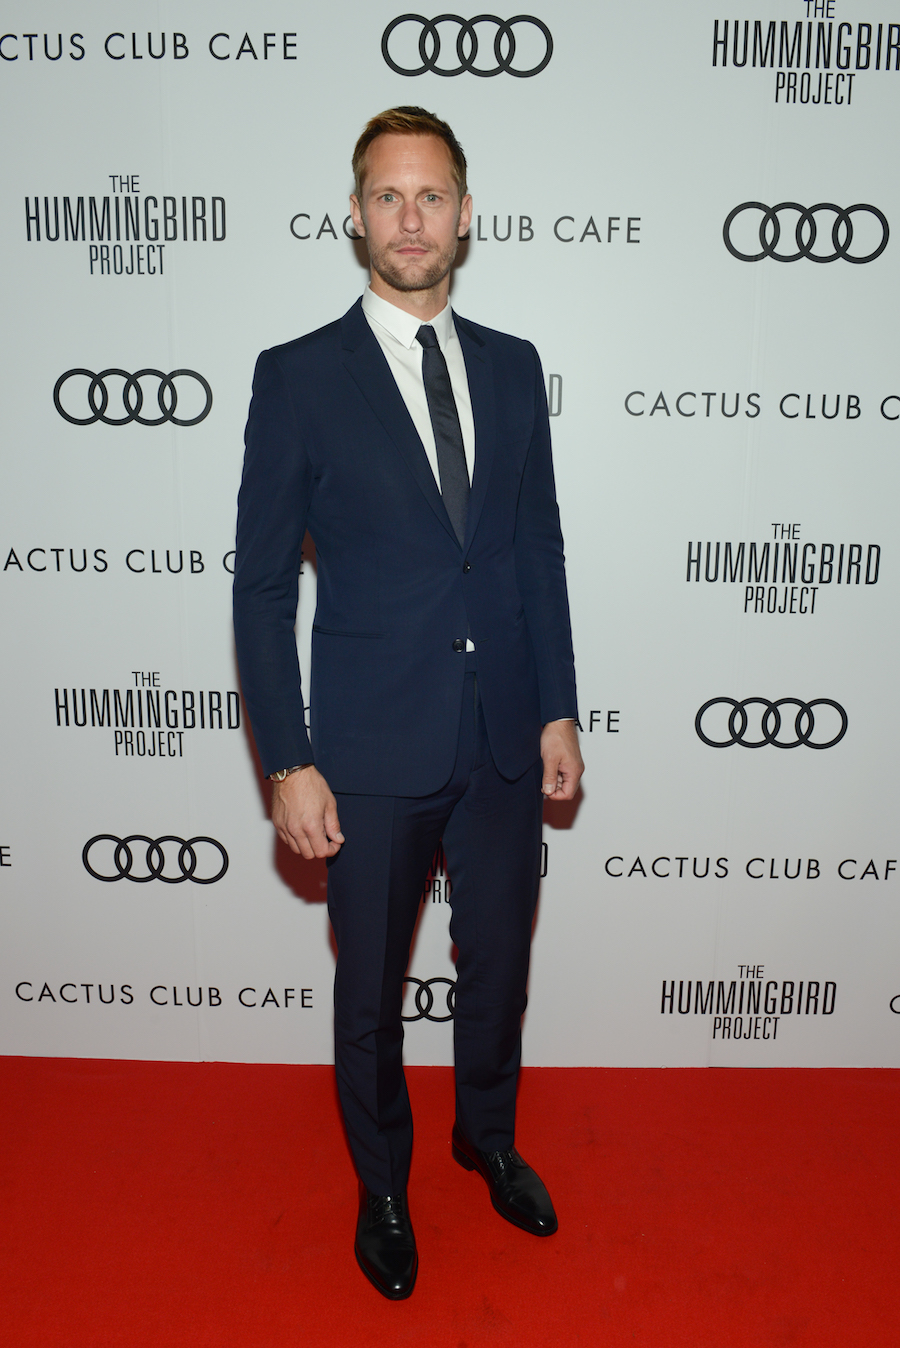 Alexander Skarsgård at 'The Hummingbird Project' premiere party hosted by Cactus Club Cafe at First Canadian Place. (Photo: George Pimentel - Getty Images for Cactus Club Cafe) | View the VIBE